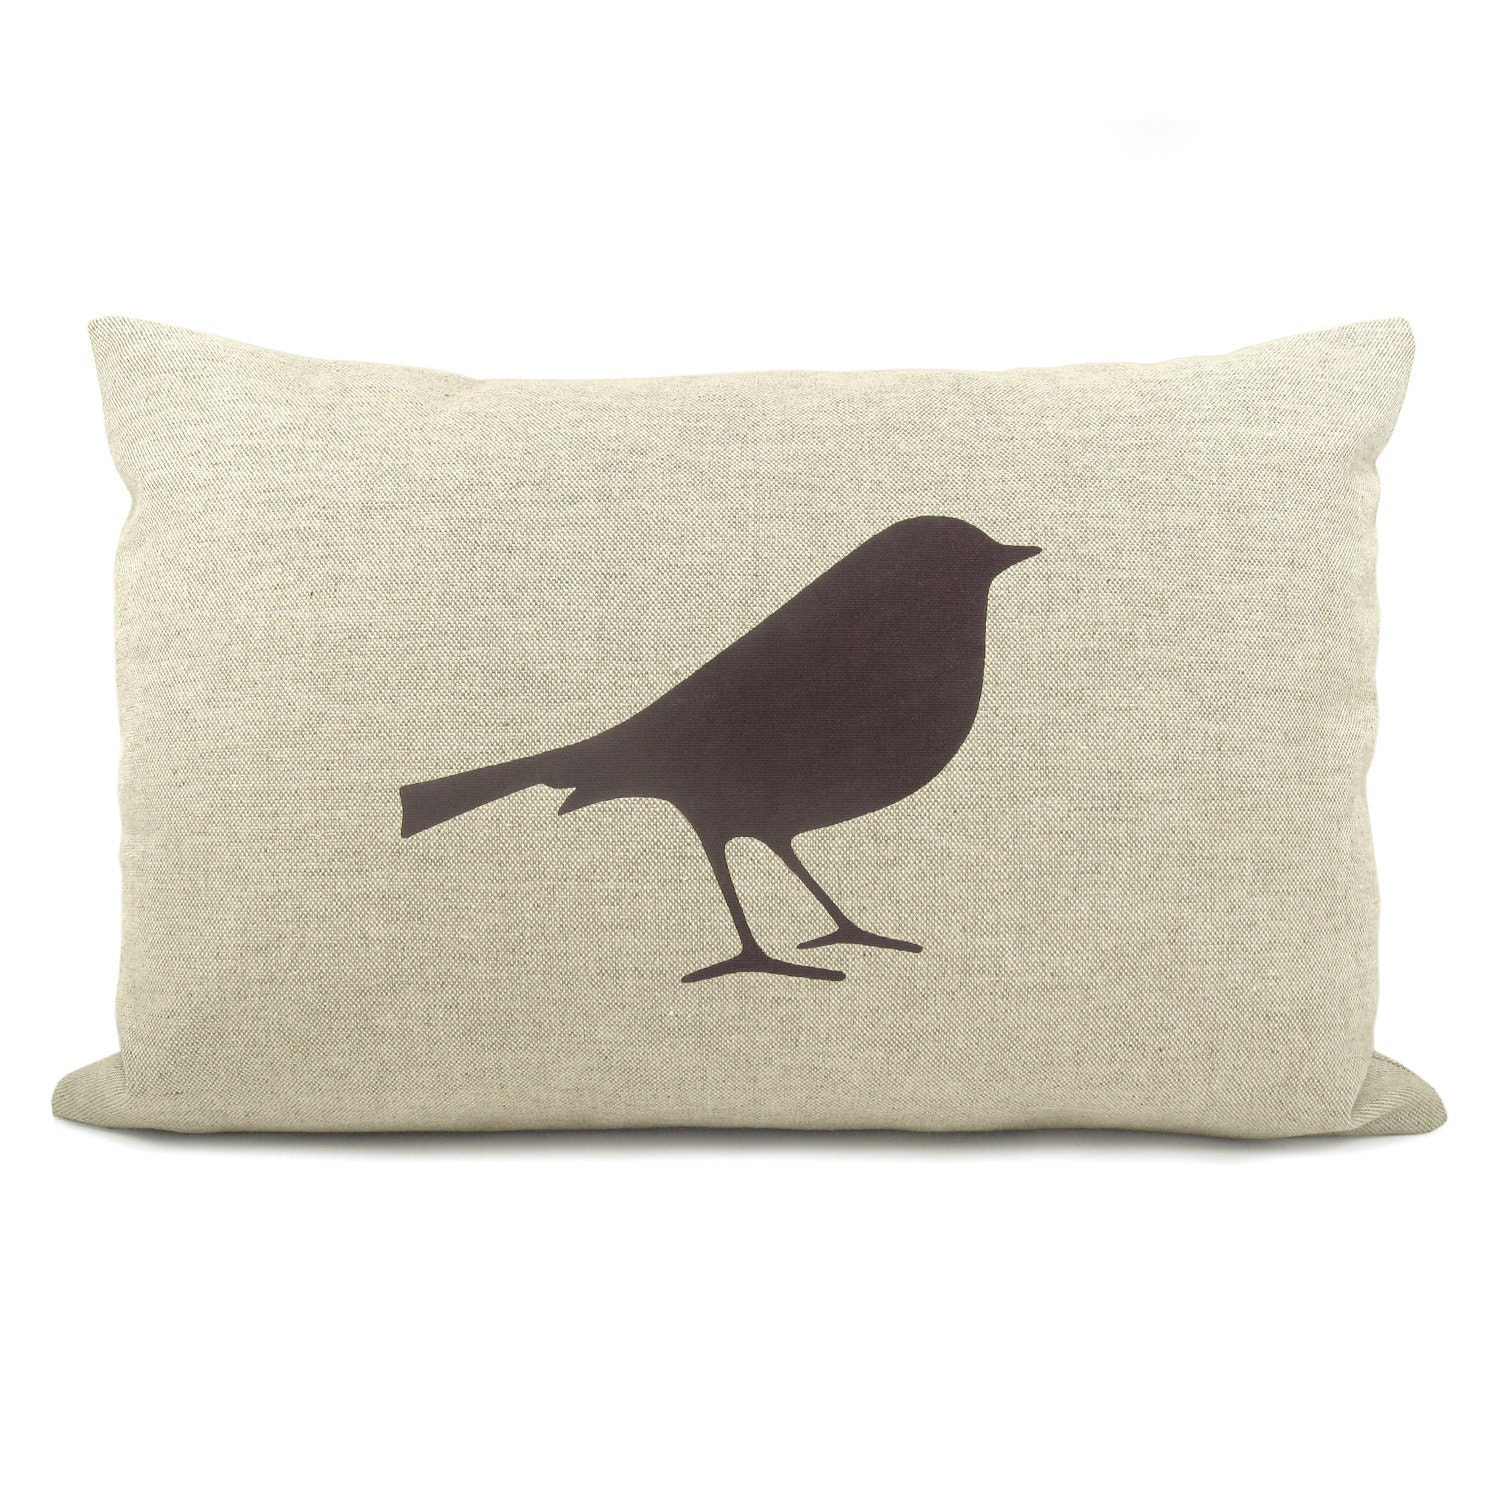 Throw Pillows With Birds : Decorative Bird Pillow Case Cushion Cover in Dark by RocailStudio